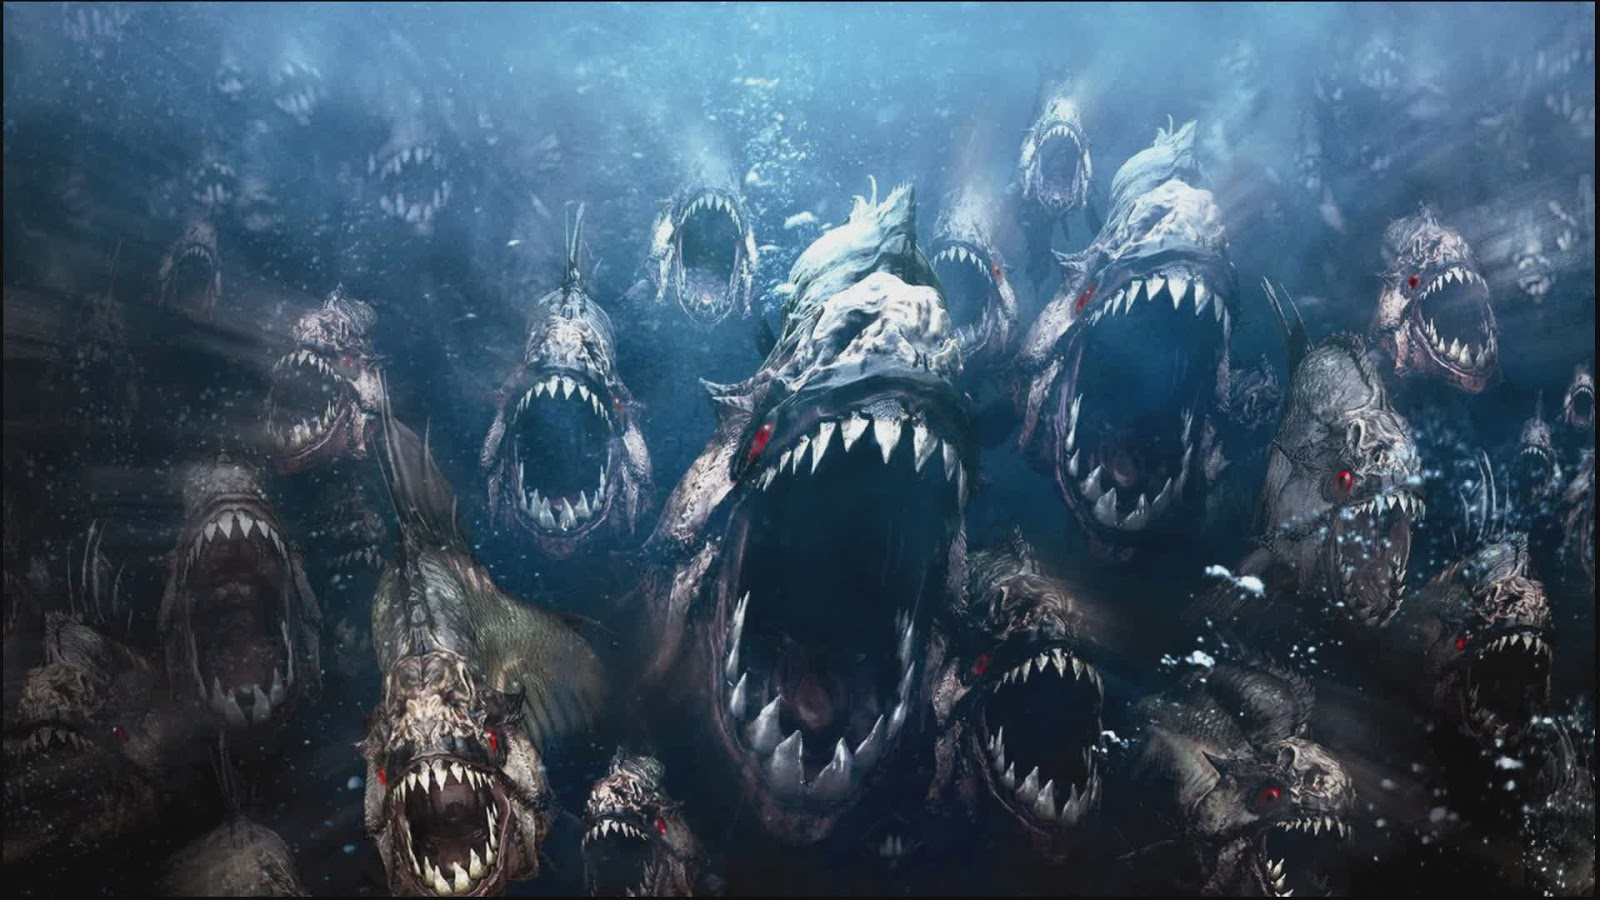 1080p Wallpaper Cool Wallpapers Hd With Resolution Piranha